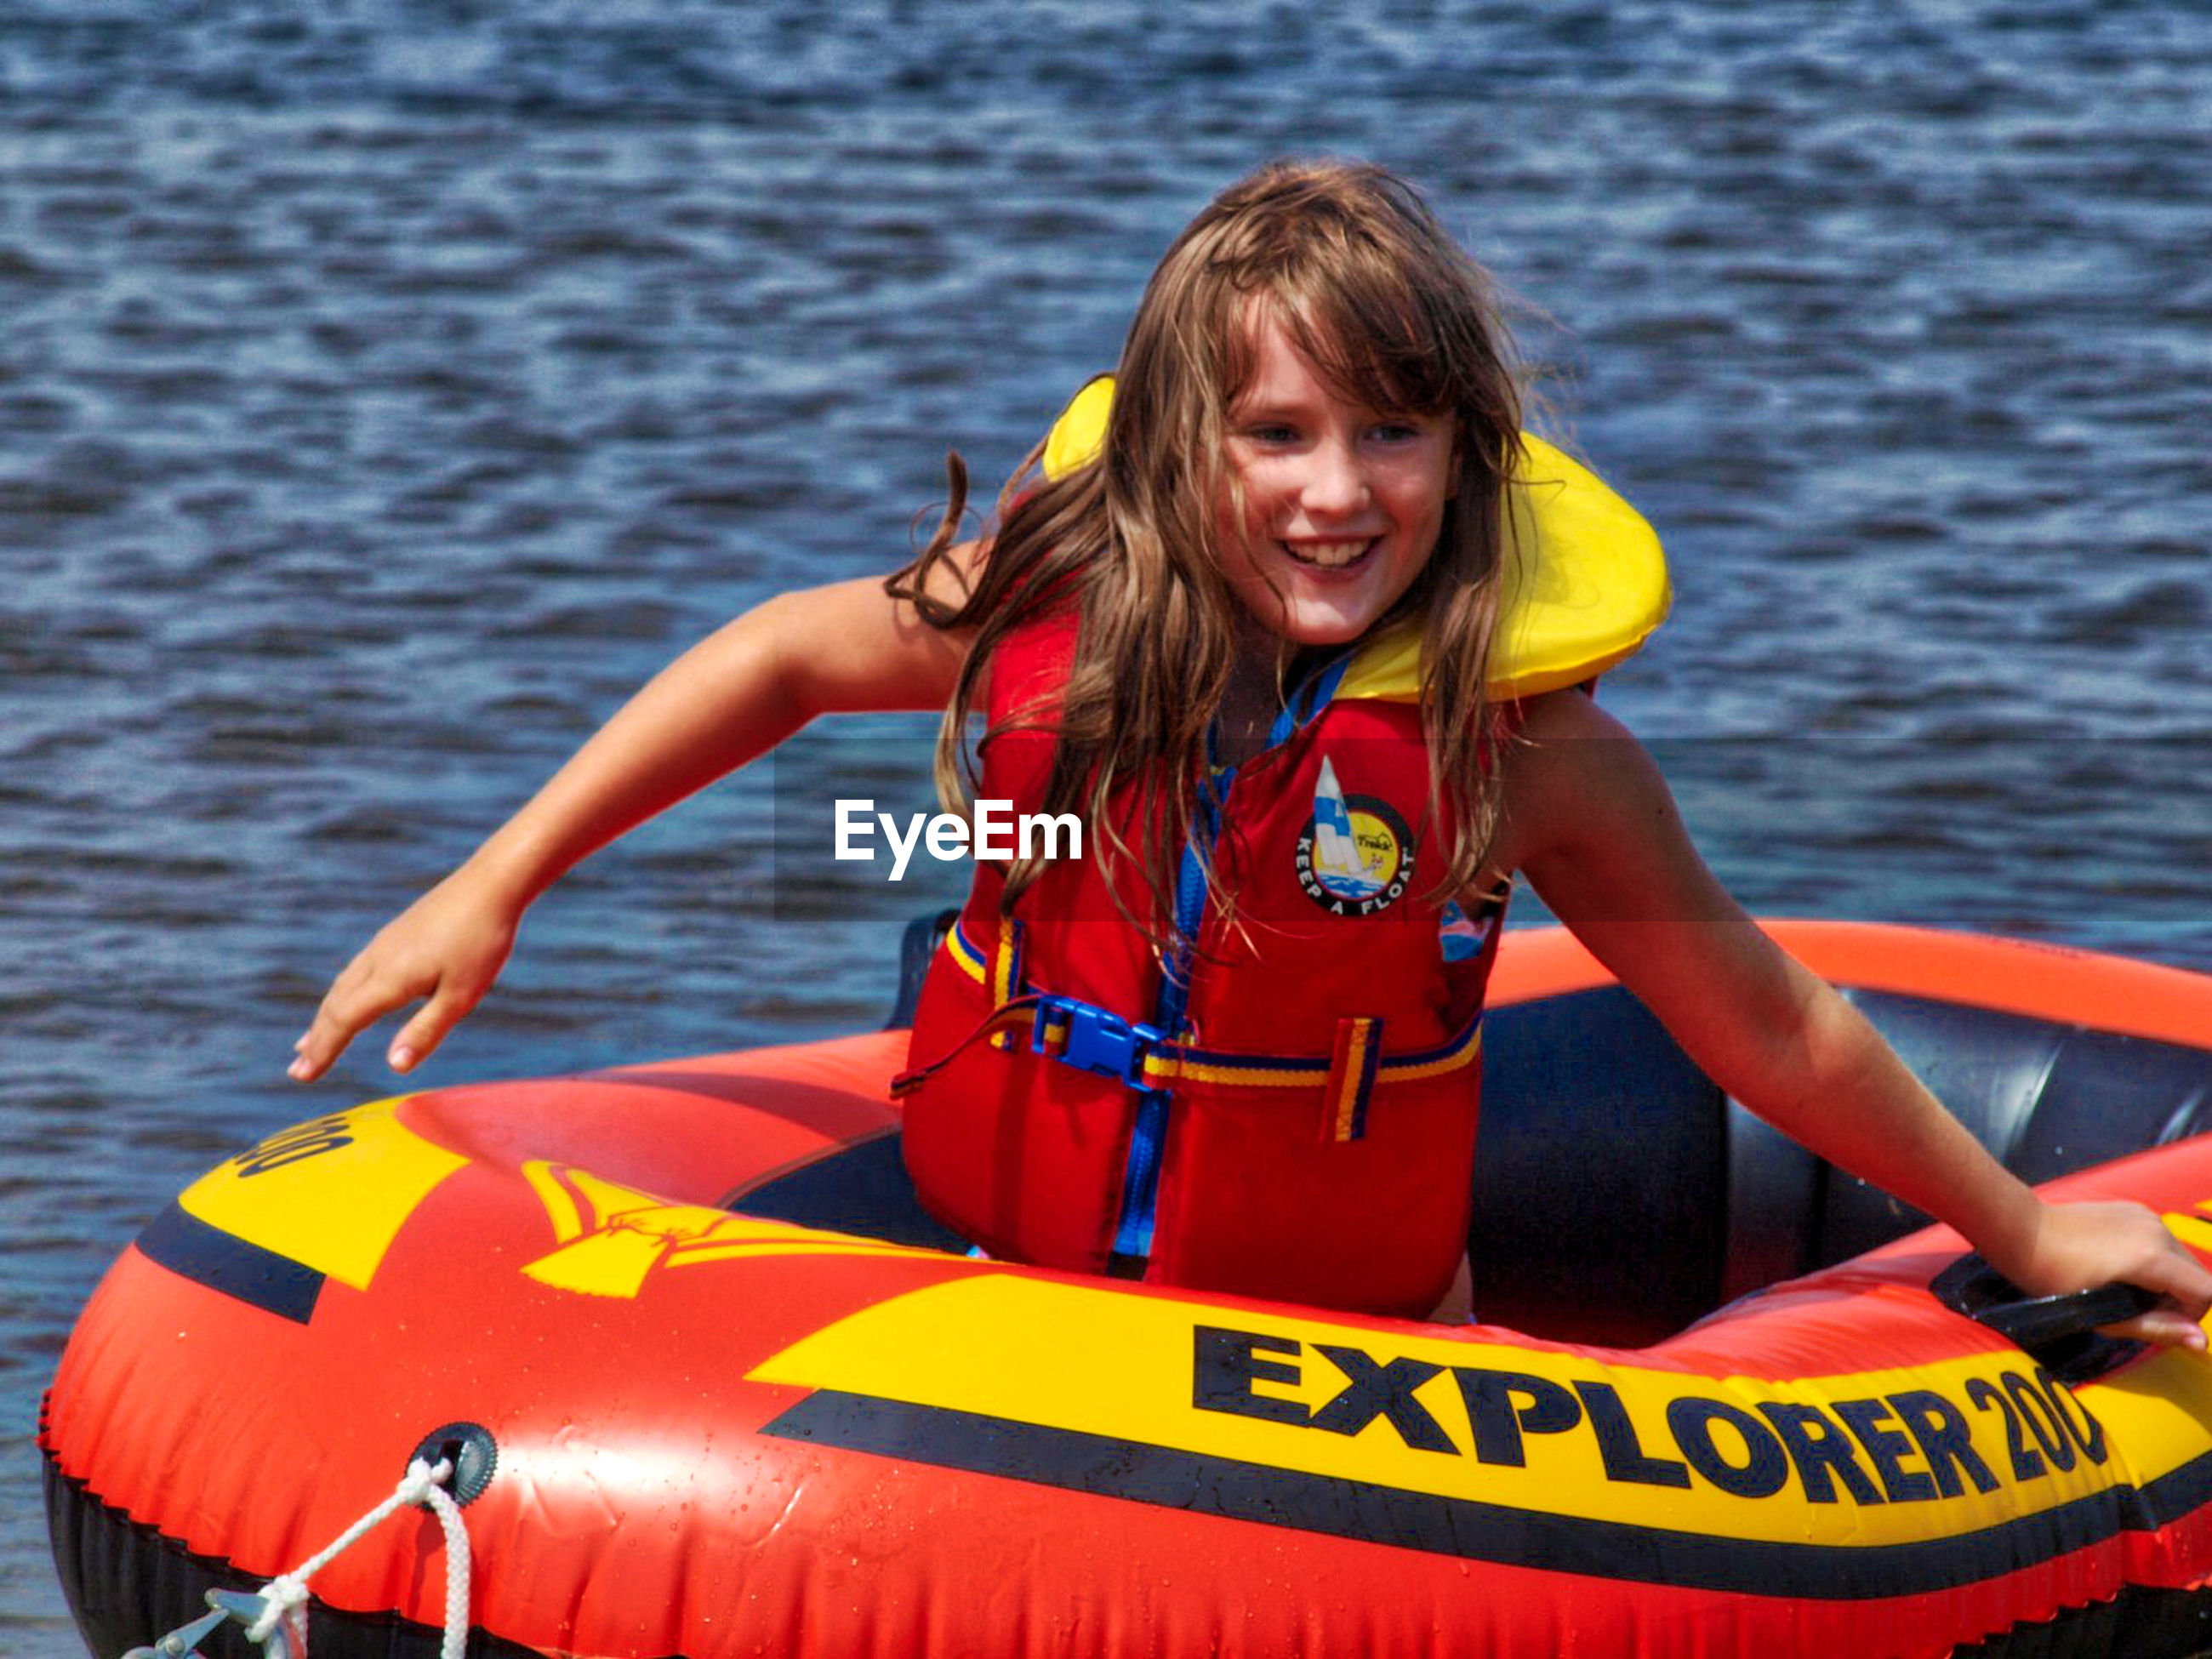 smiling, looking at camera, portrait, water, life jacket, nautical vessel, waist up, sea, front view, day, happiness, one person, blond hair, leisure activity, cheerful, outdoors, childhood, lifestyles, real people, oar, kayak, young adult, adult, people, adults only